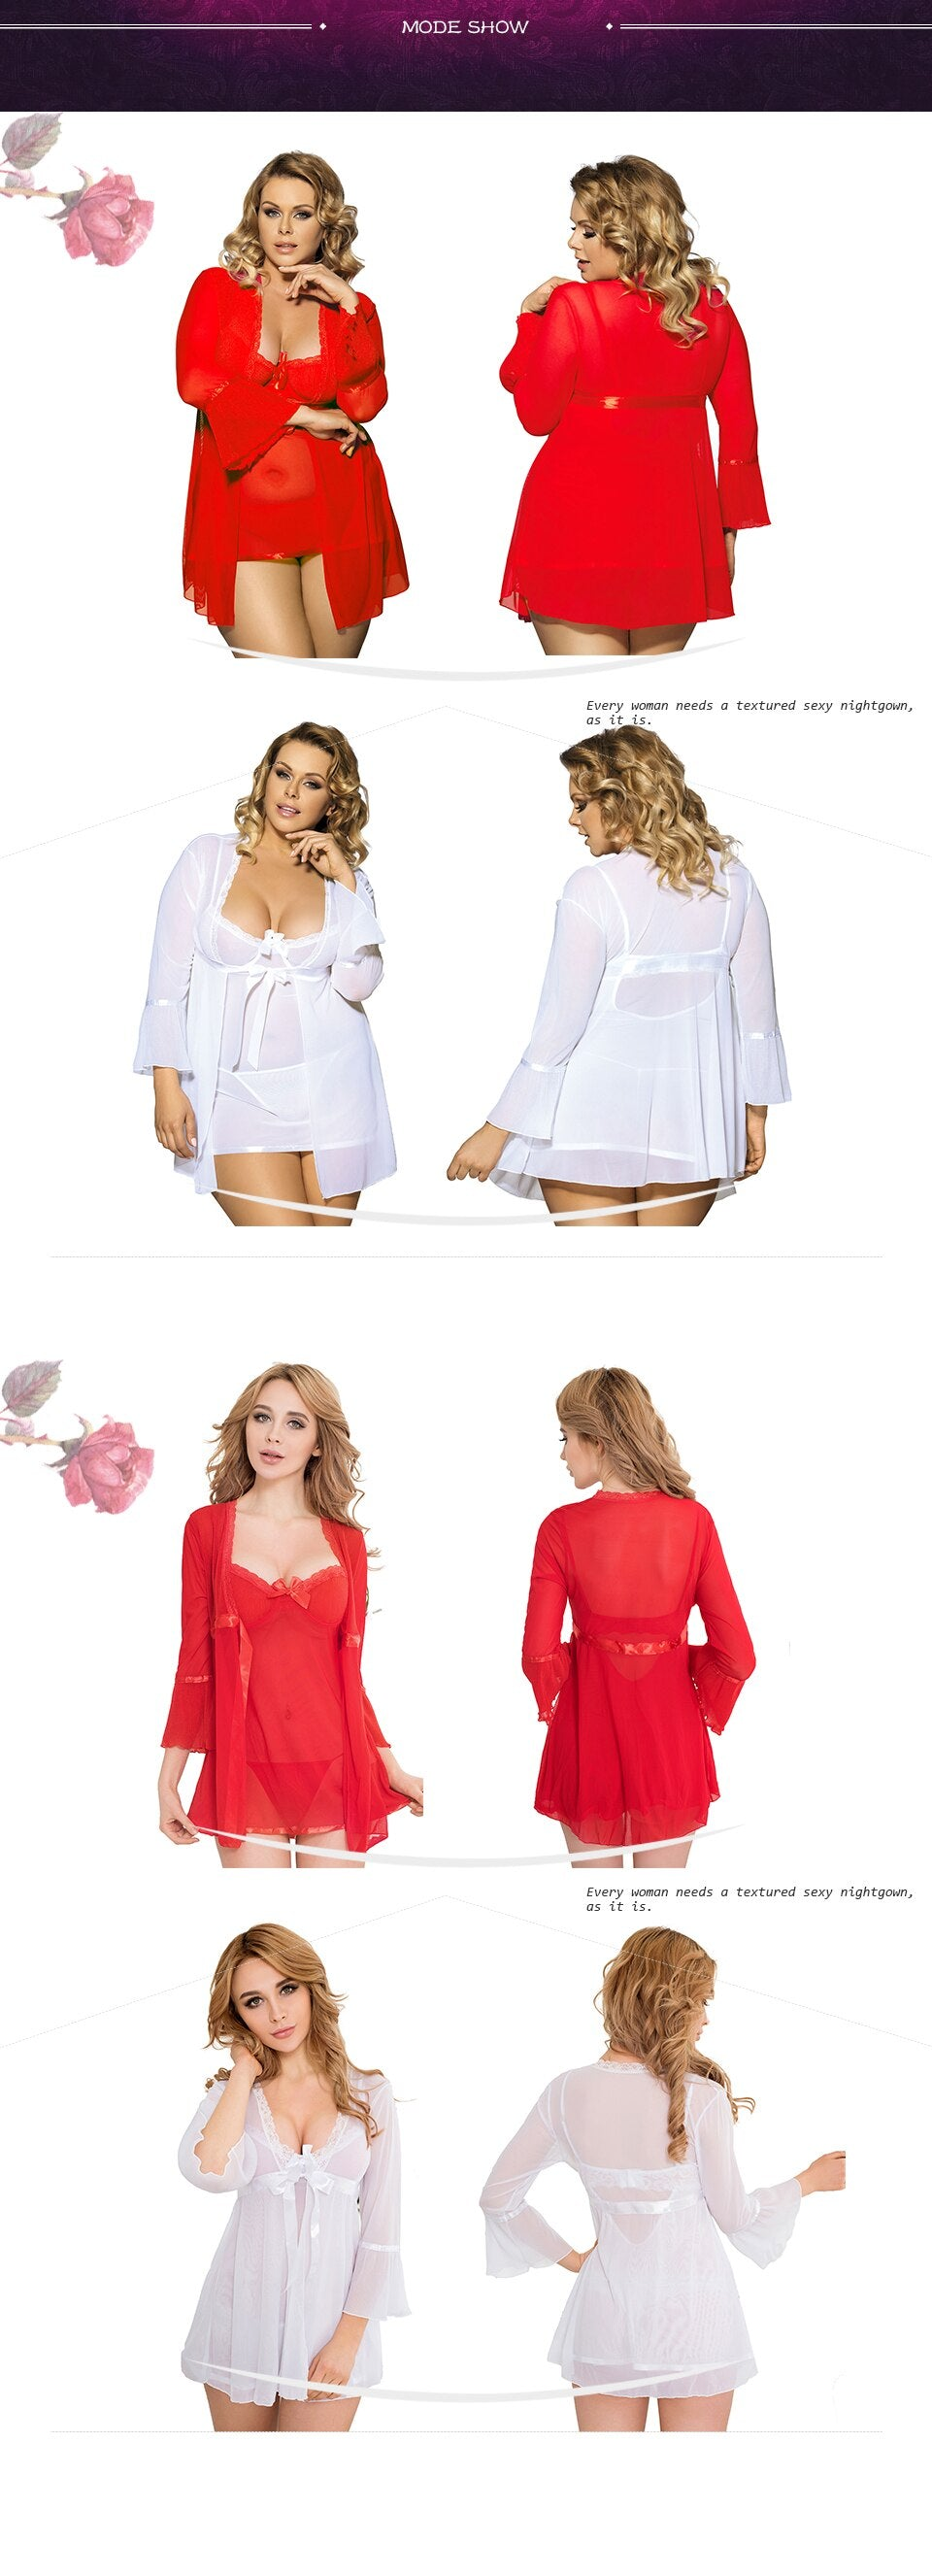 Up to XXXL Sexy Lingerie Divine Soft Nightgown Top +G string+Coat - Own Pleasures